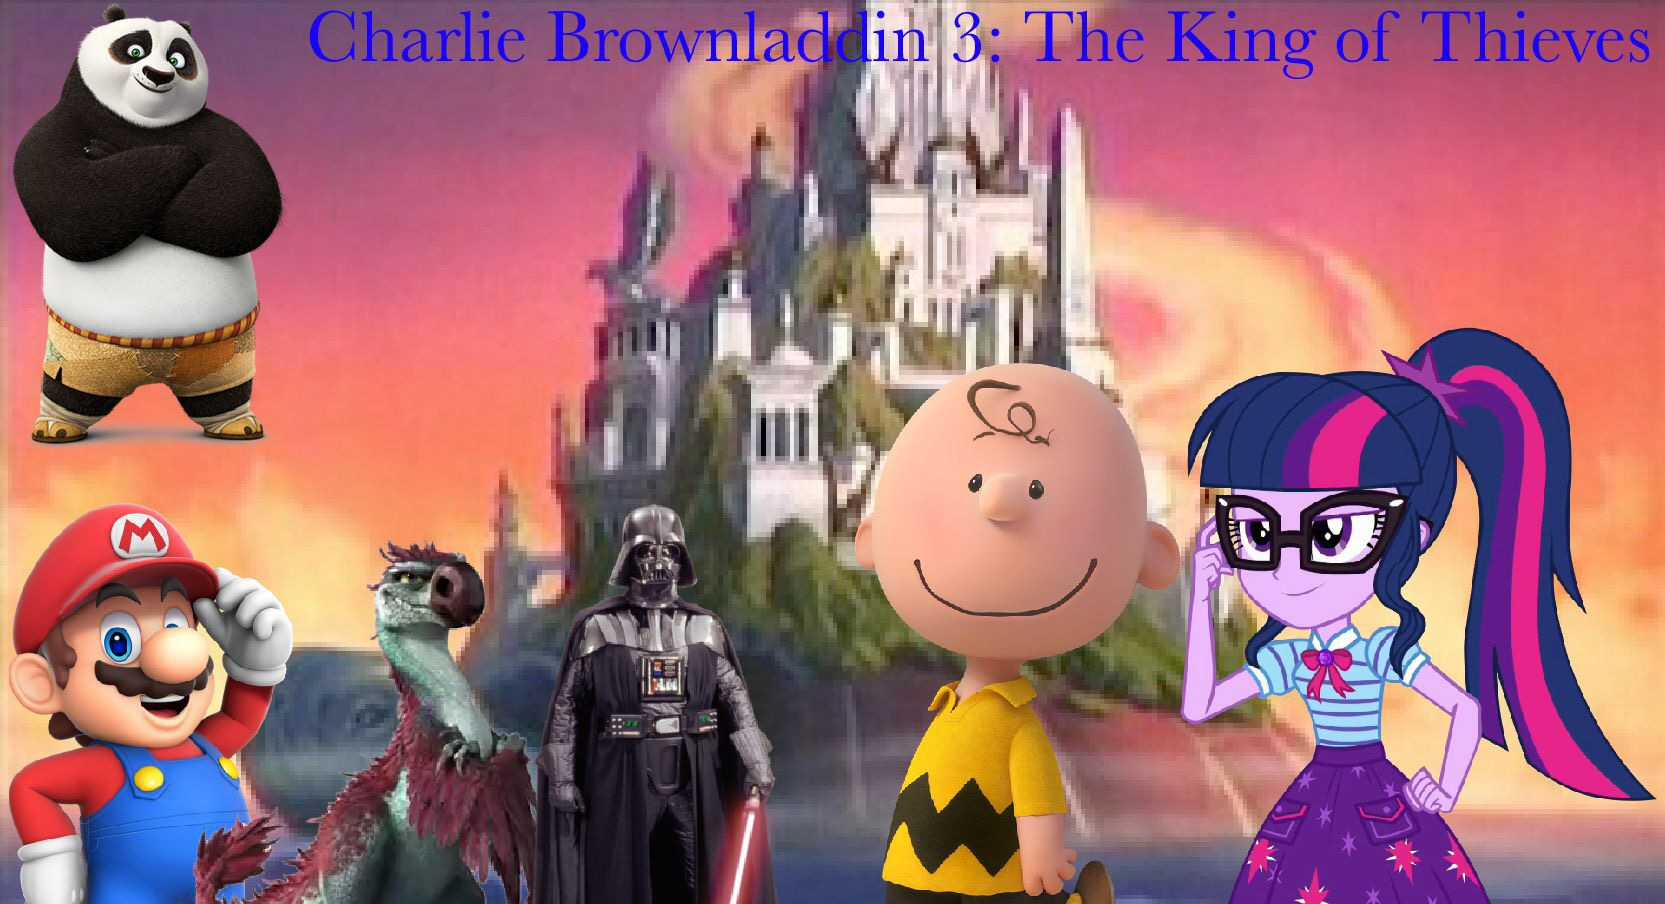 Charlie Brownladdin 3: The King of Thieves